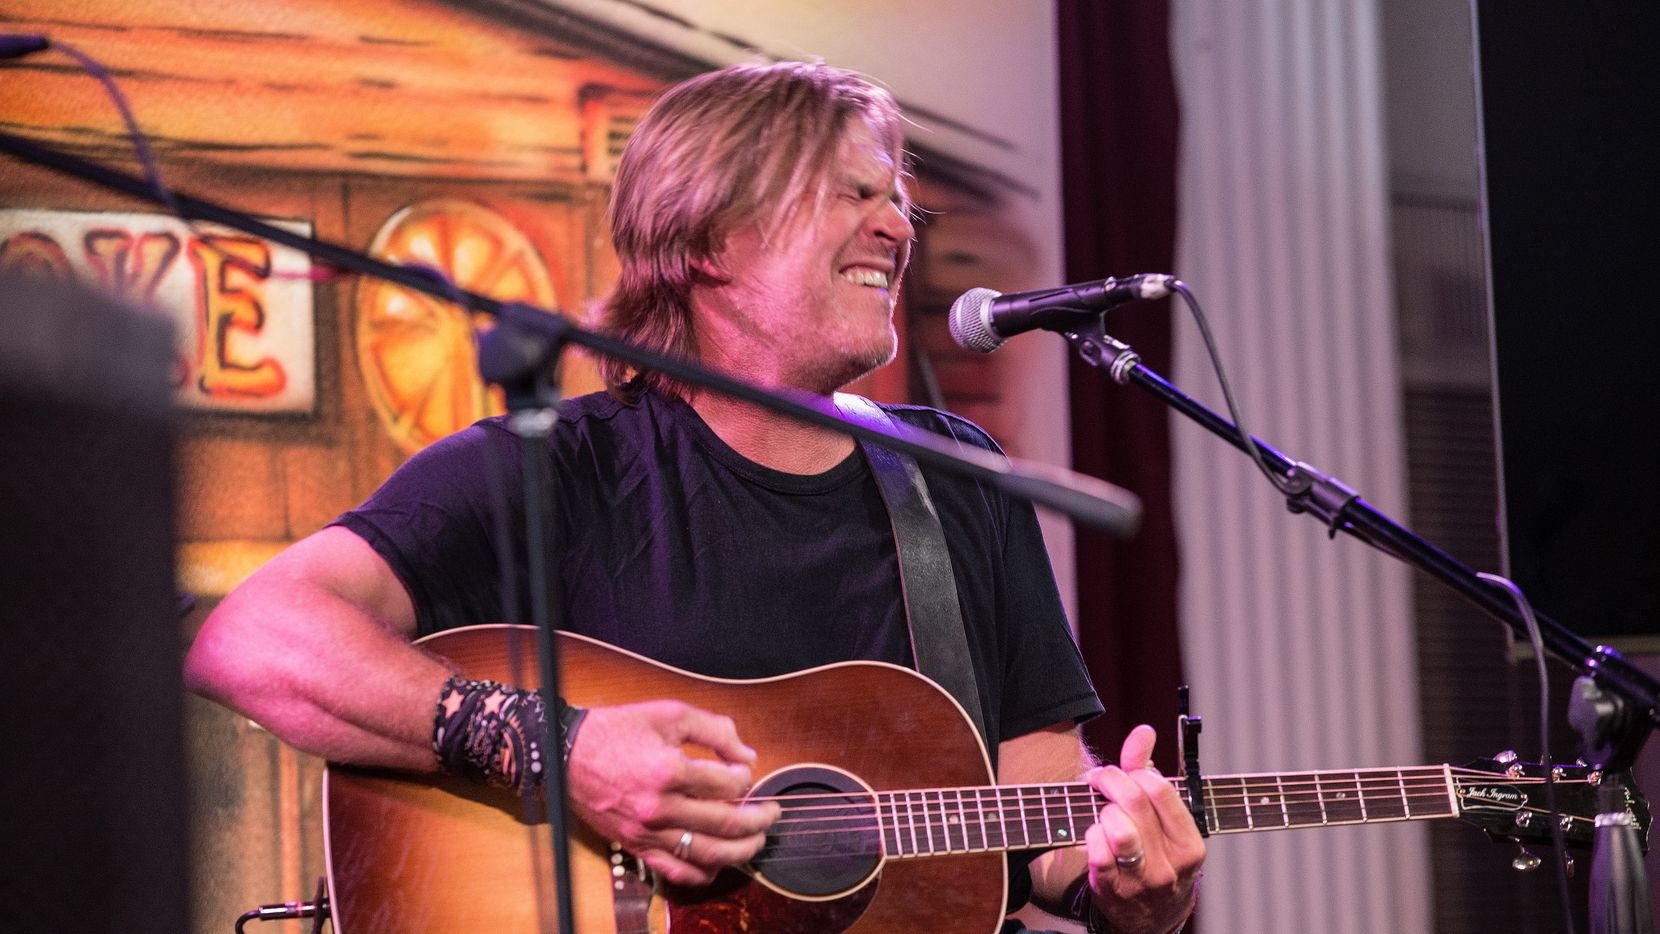 Jack Ingram performs during the Sundance Selects Presents Ethan Hawke's 'Blaze' at Rockefellers on August 12, 2018 in Houston. Ingram is one of the performers on the bill for an upcoming virtual concert at Billy Bob's Texas.